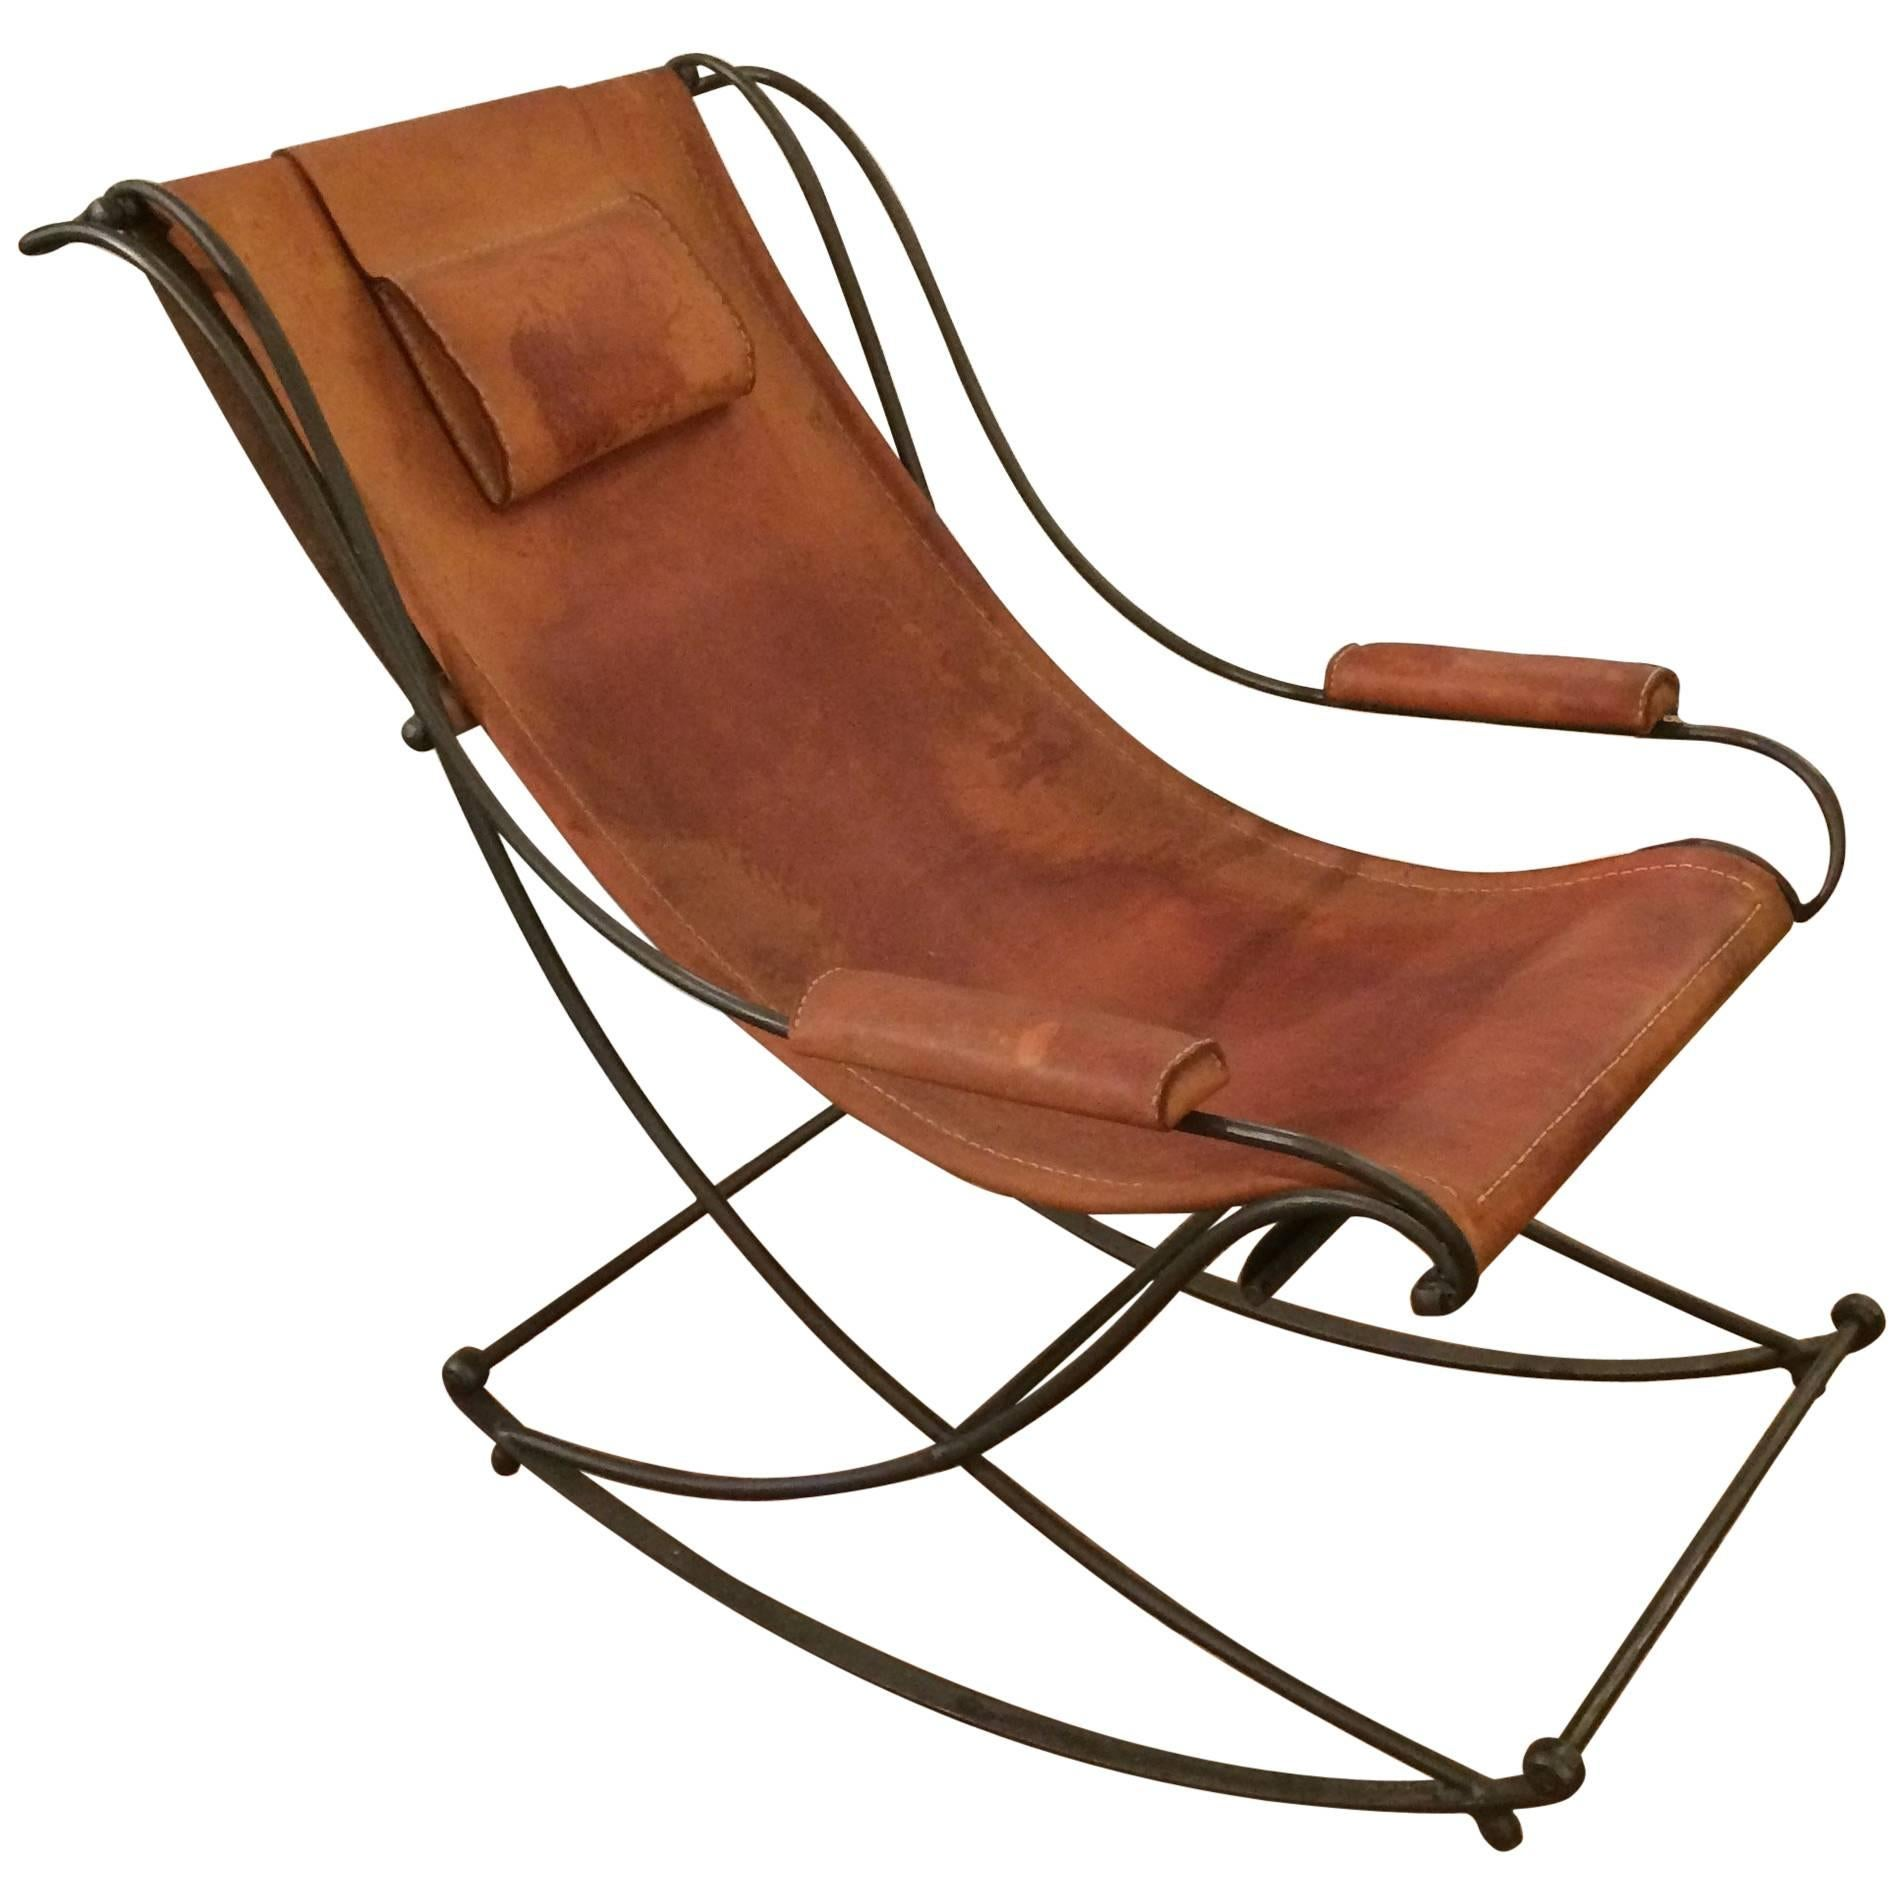 Super Cool Sling Back Distressed Leather And Iron Rocking Chair For Sale